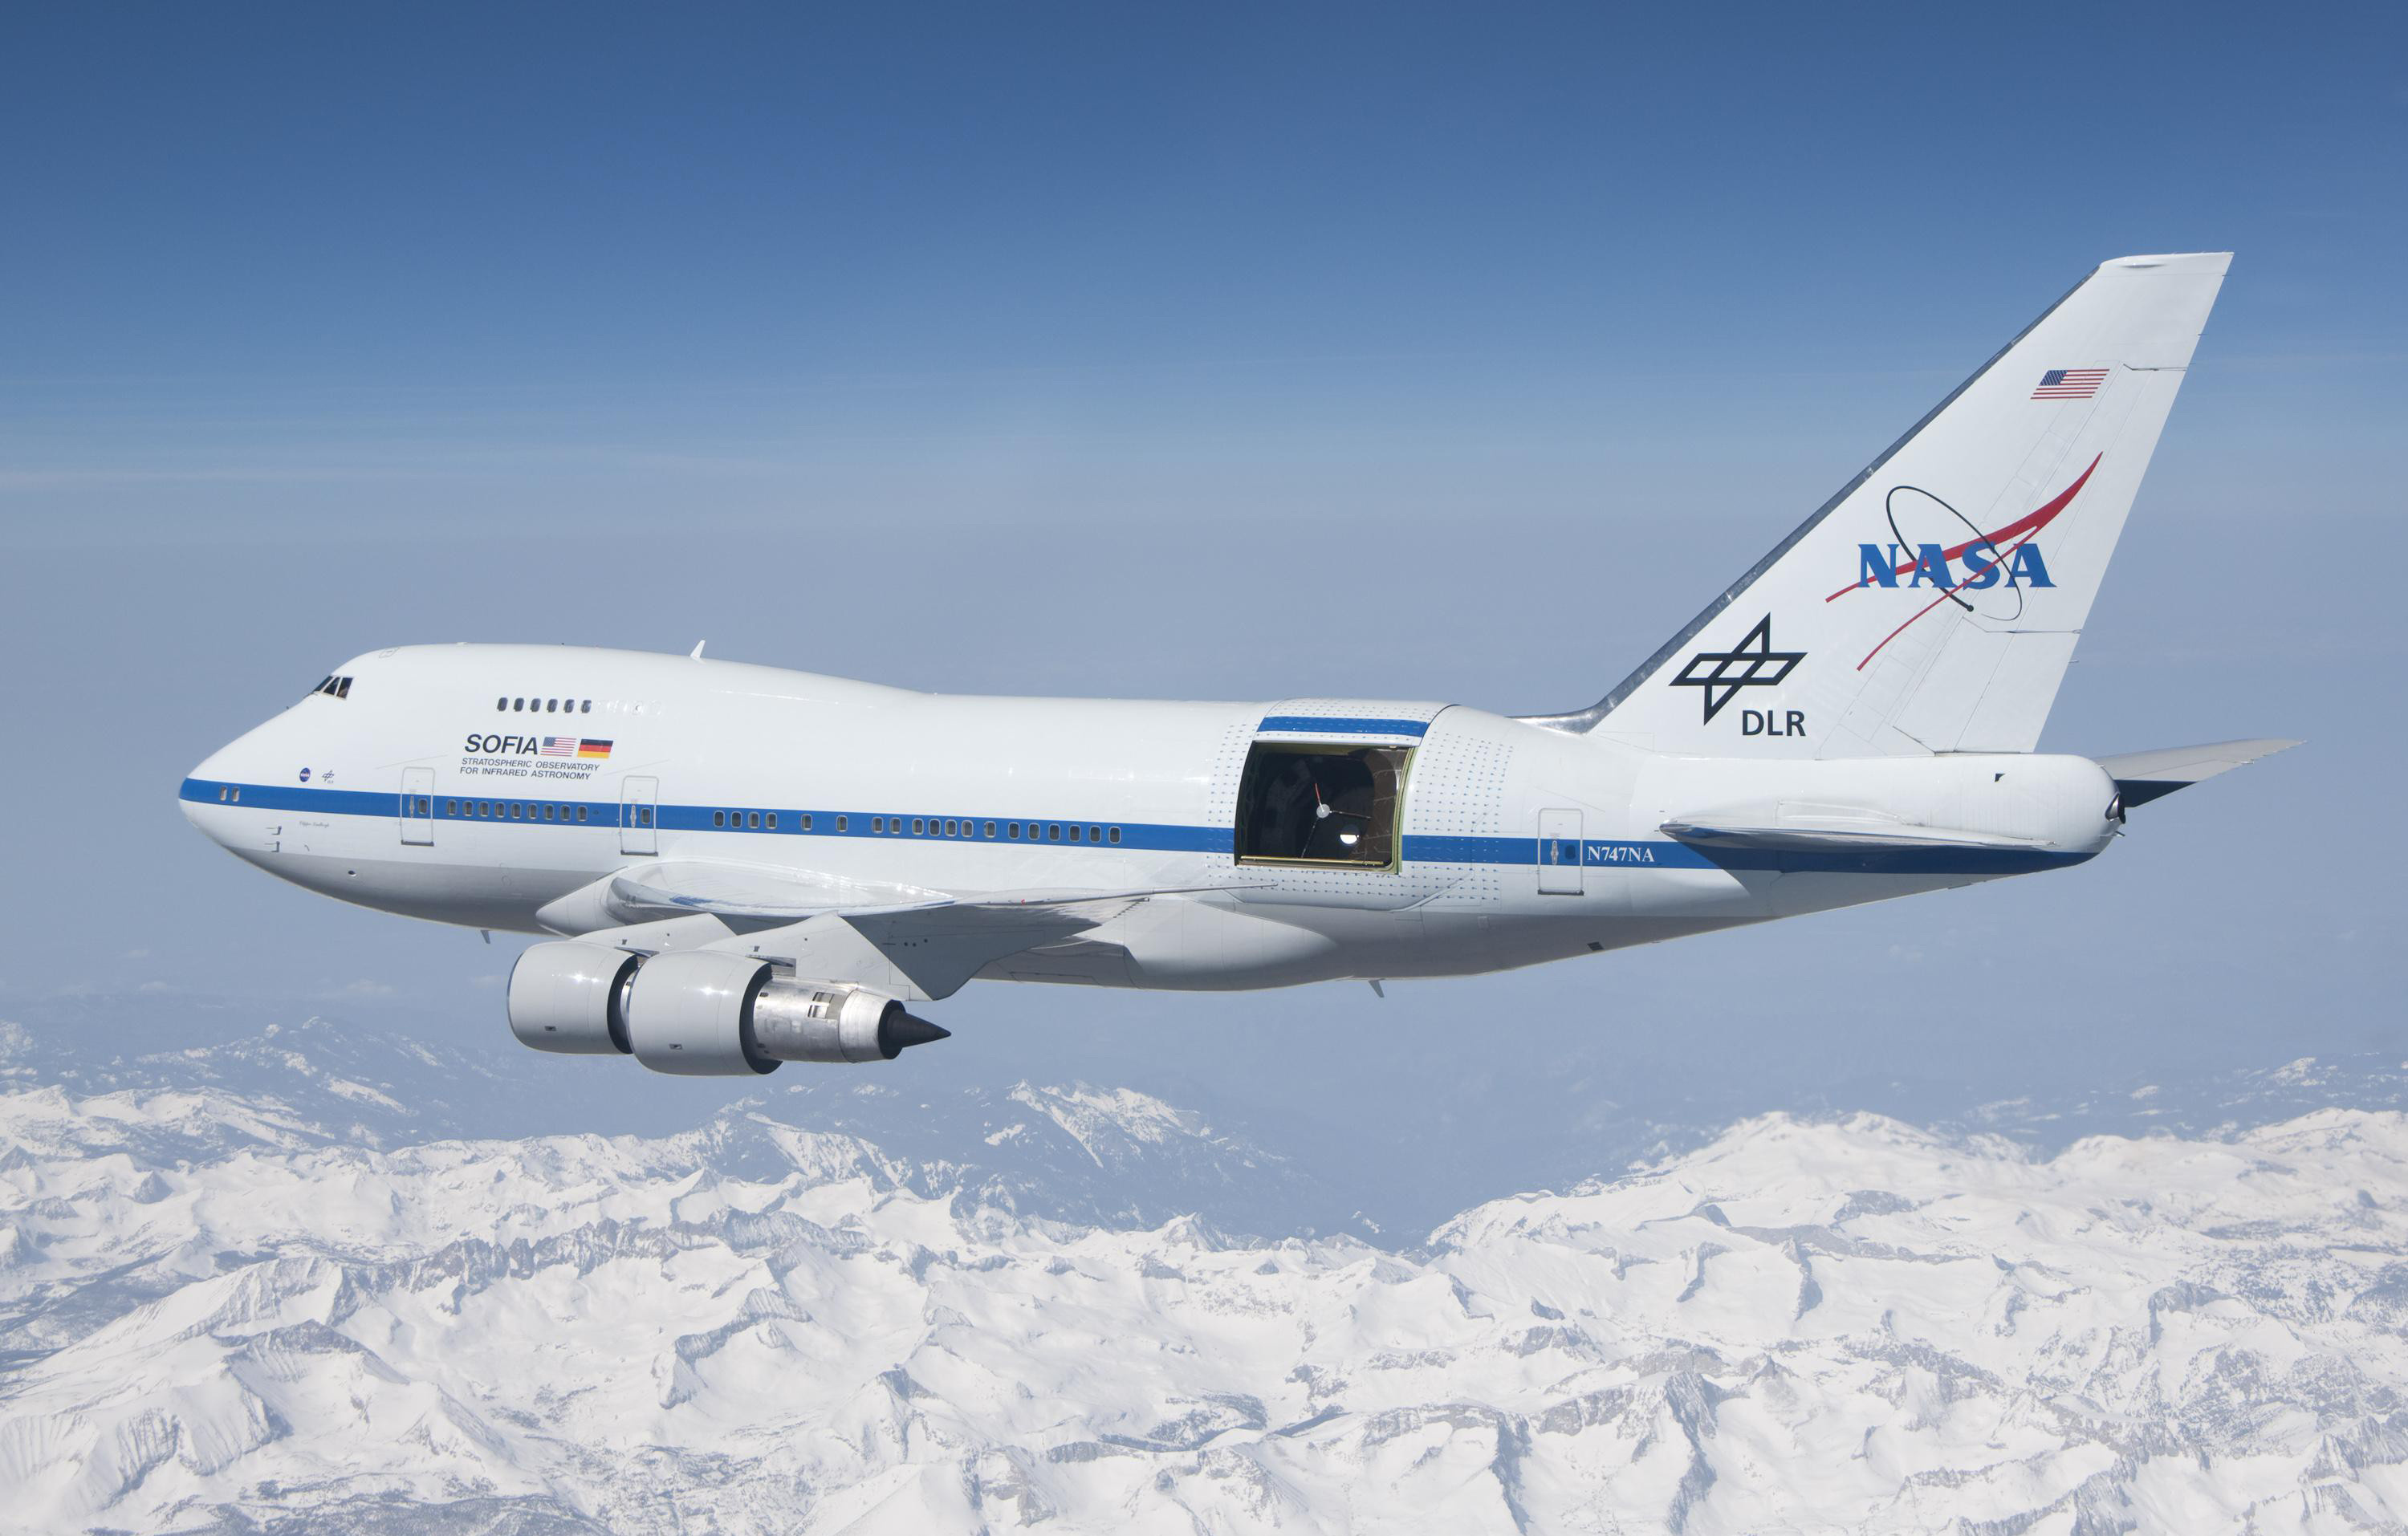 Infrared telescope boeing 747sp nasa wallpaper 3000x1914 148582 3000x1914